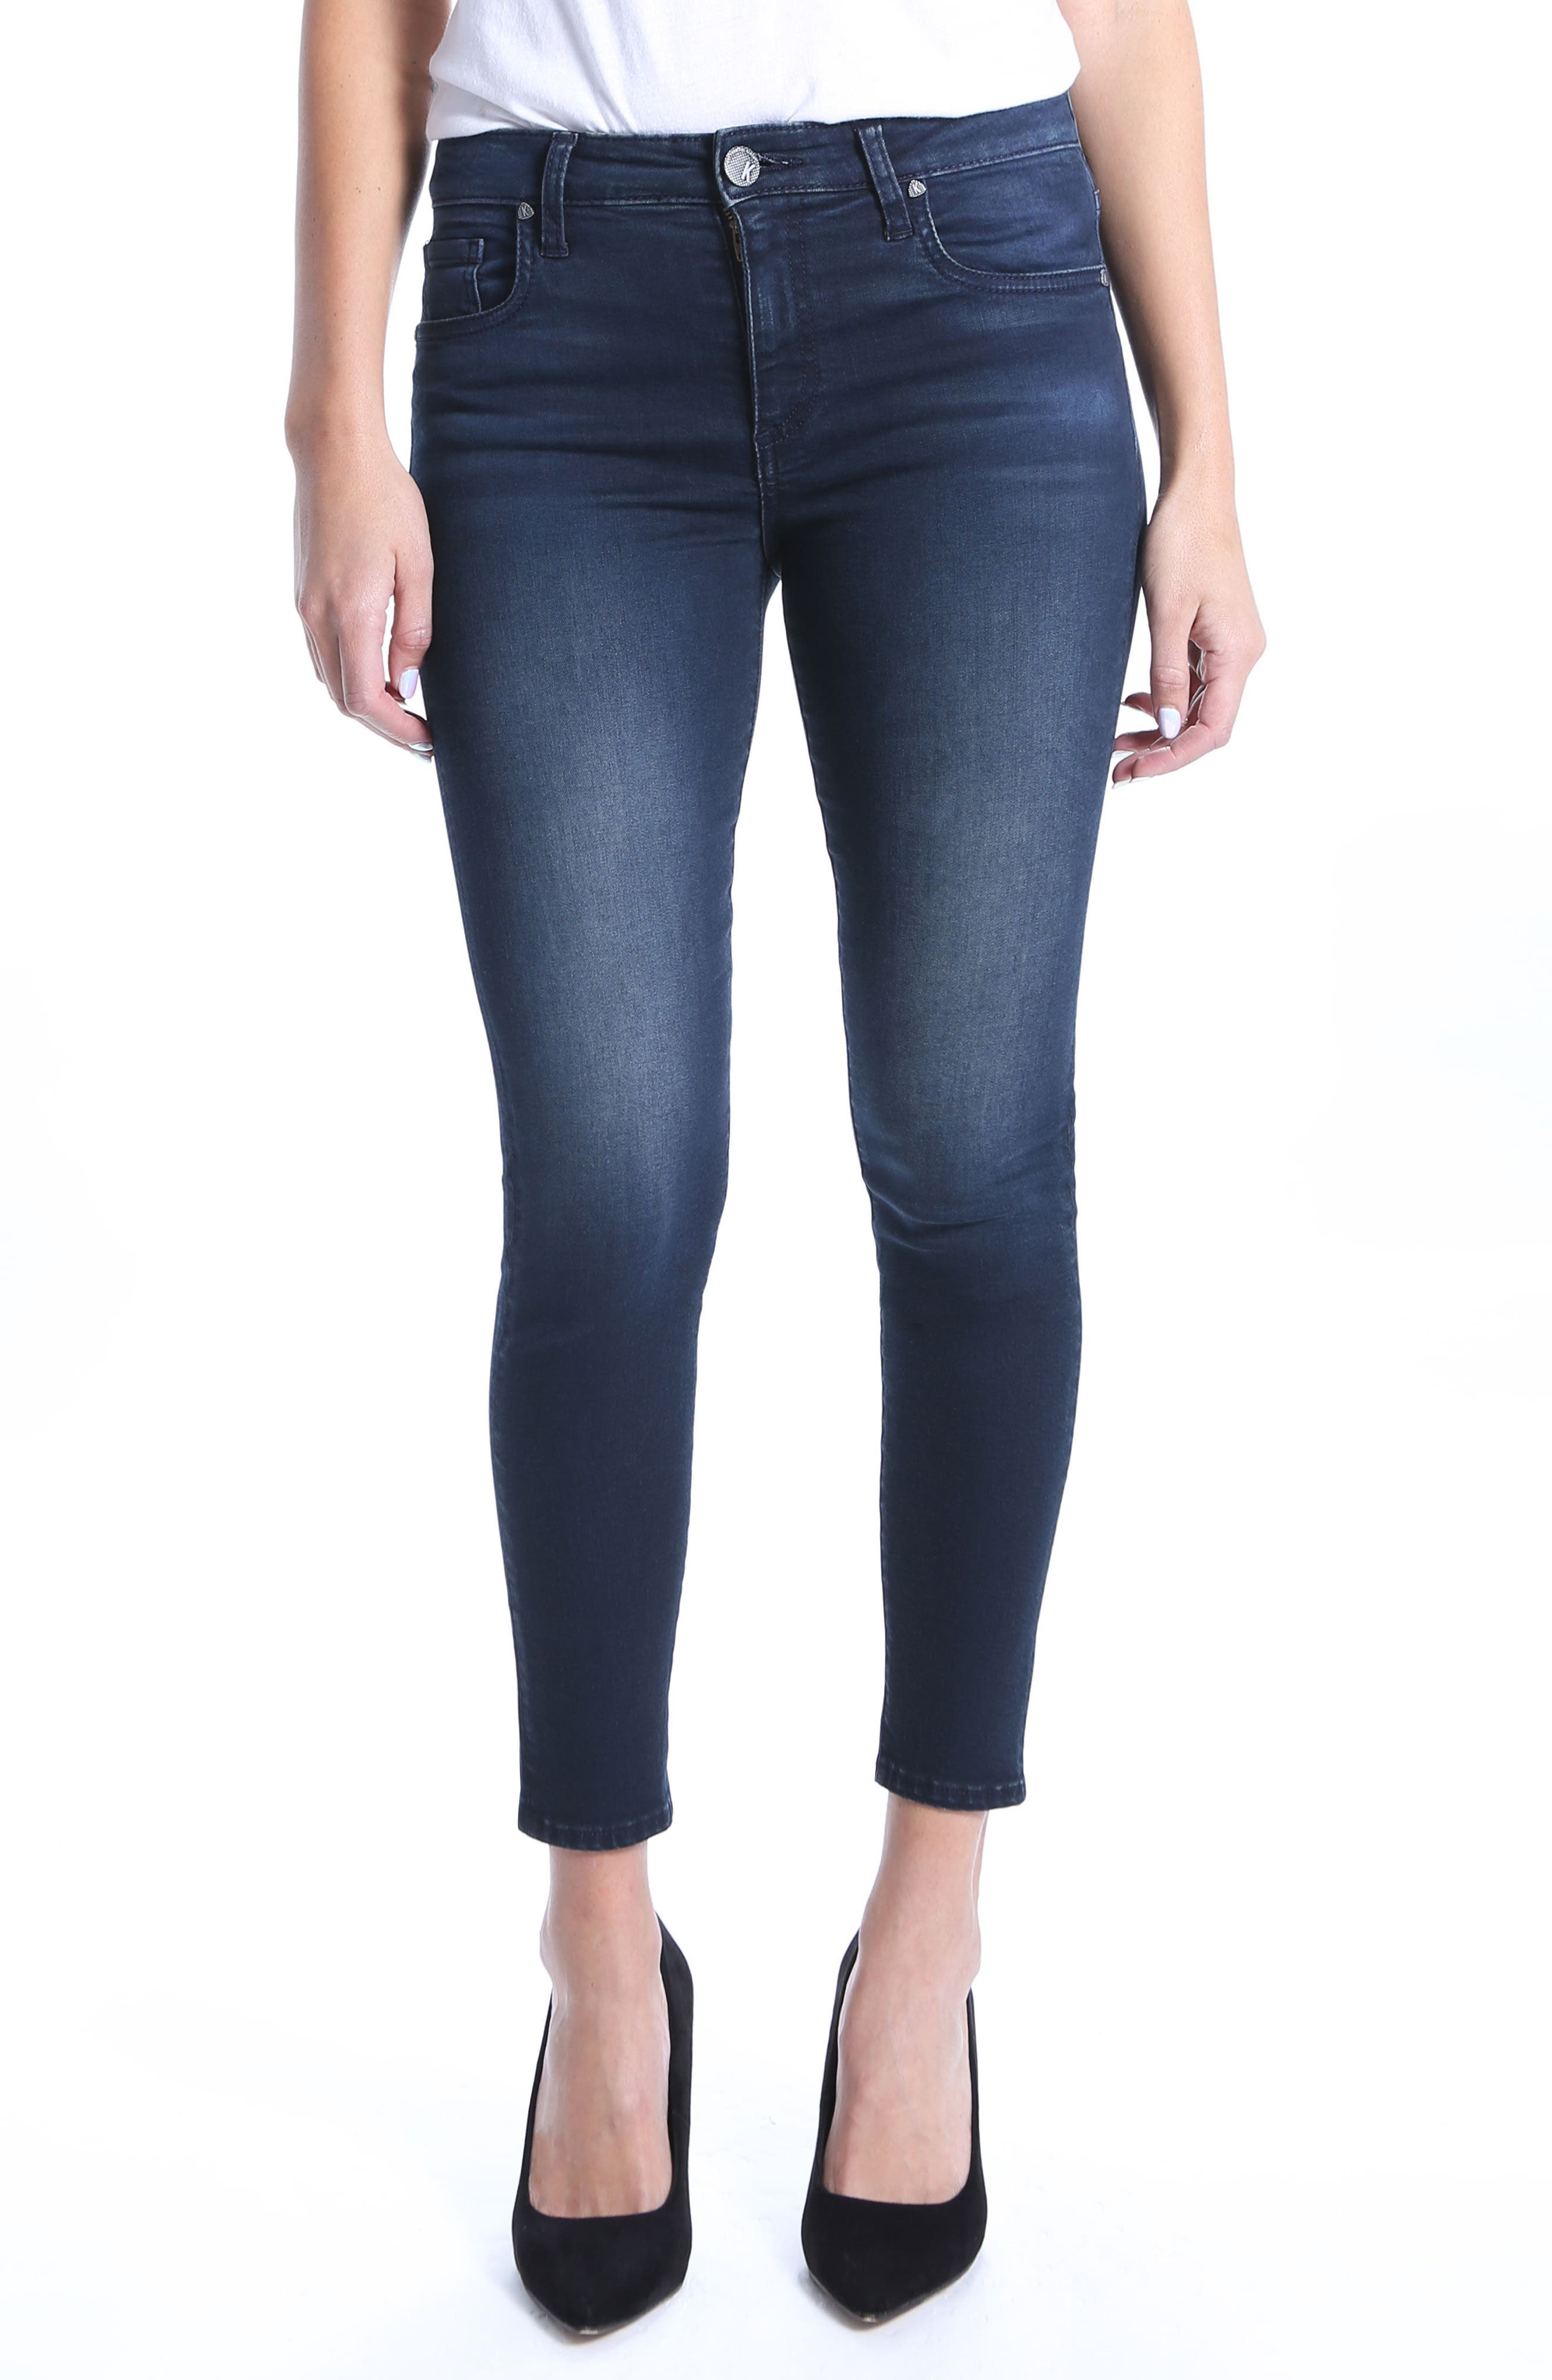 Main Image - KUT from the Kloth Donna High Rise Ankle Skinny Jeans (Recognizable)